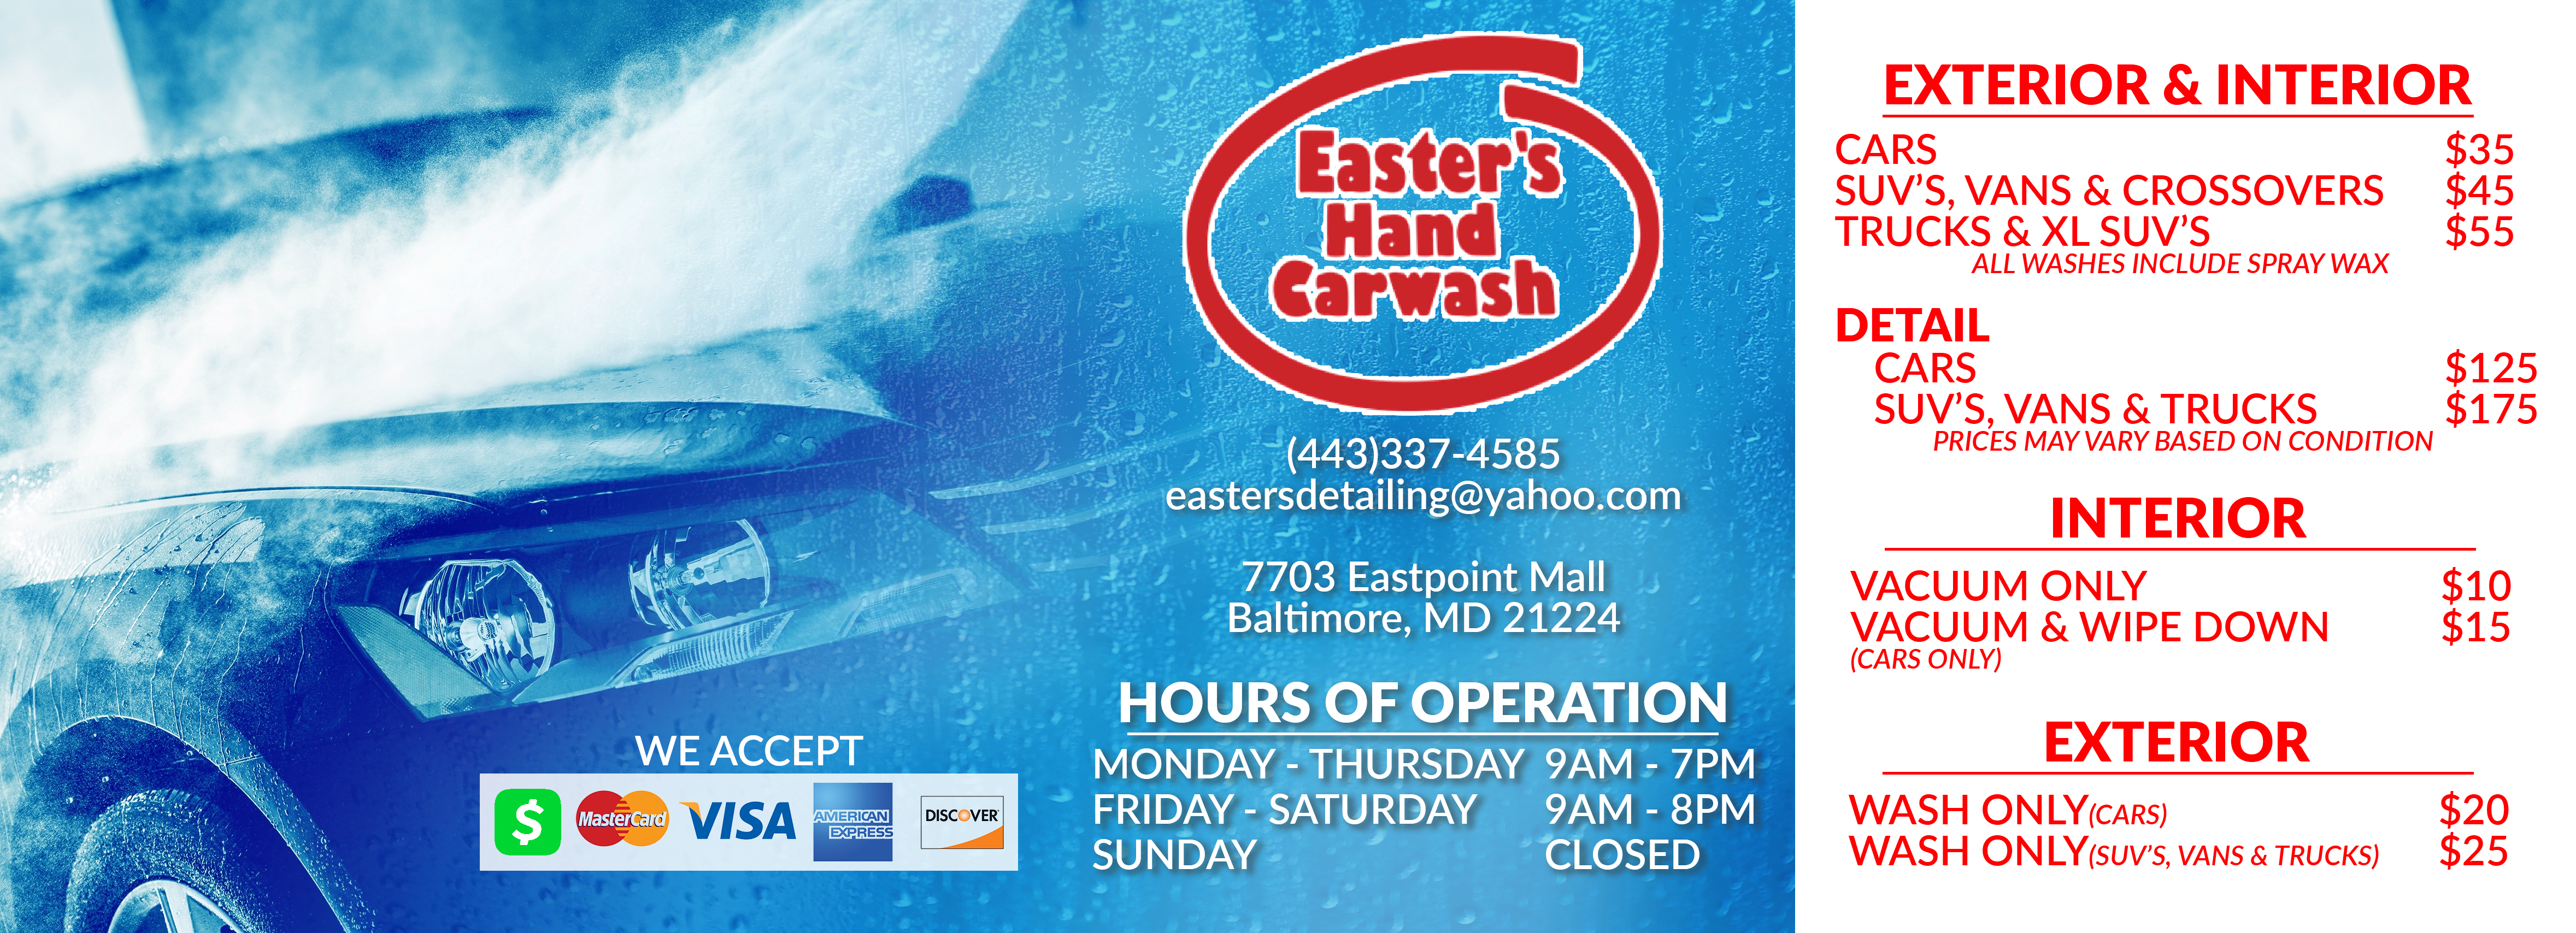 Easters Carwash